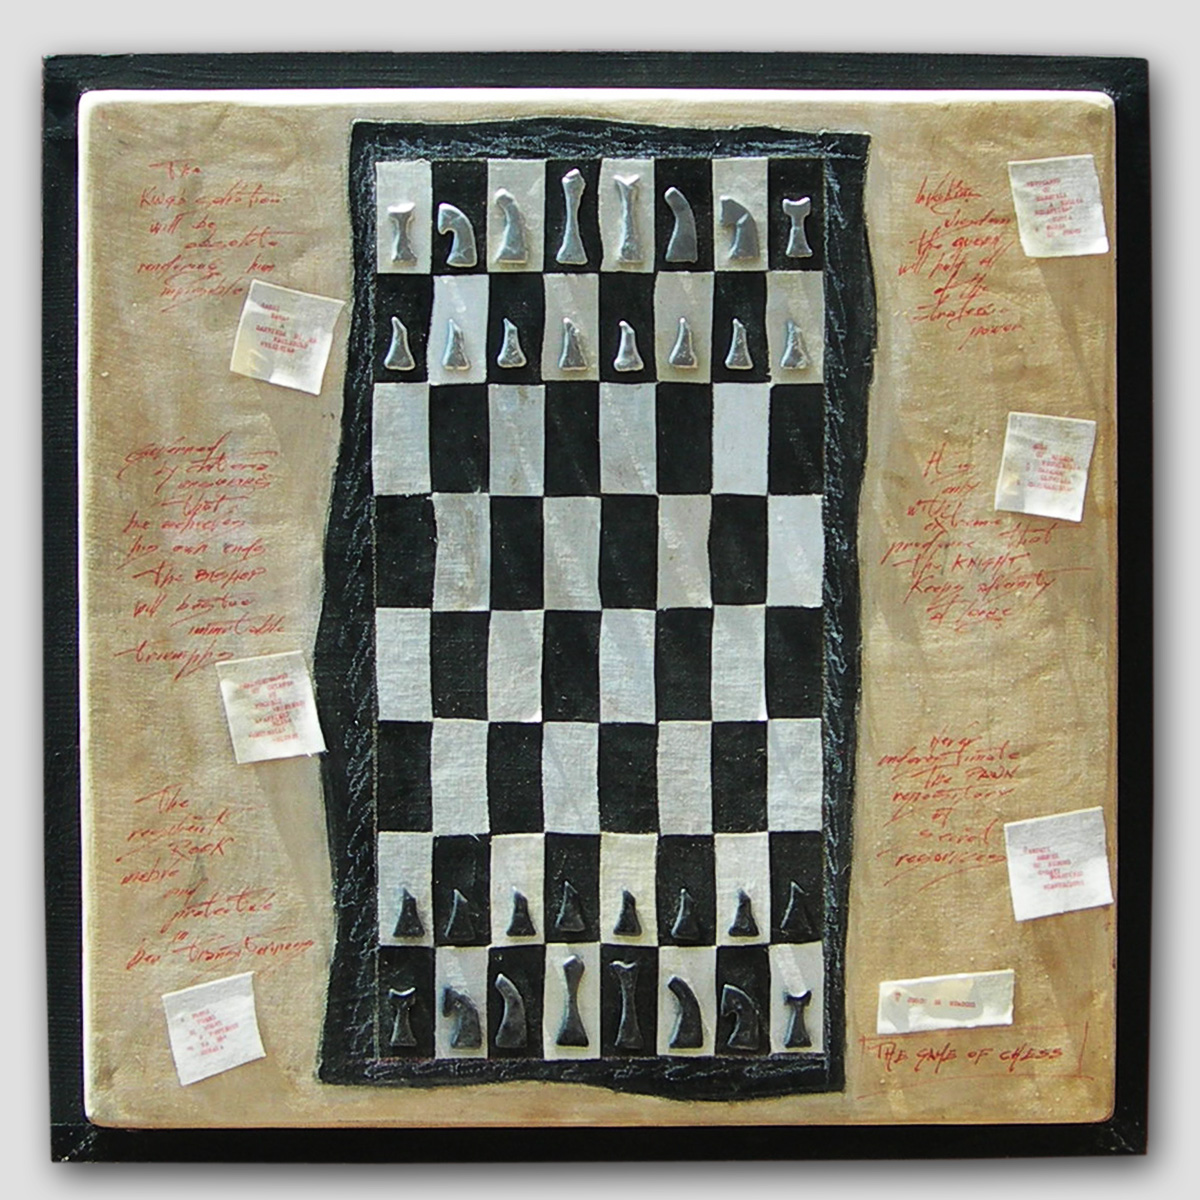 008-PRO-JECTUS (the game of chess/ù juocu di scacchi) -2012  -tecnica mista su legno  -75x75 cm.